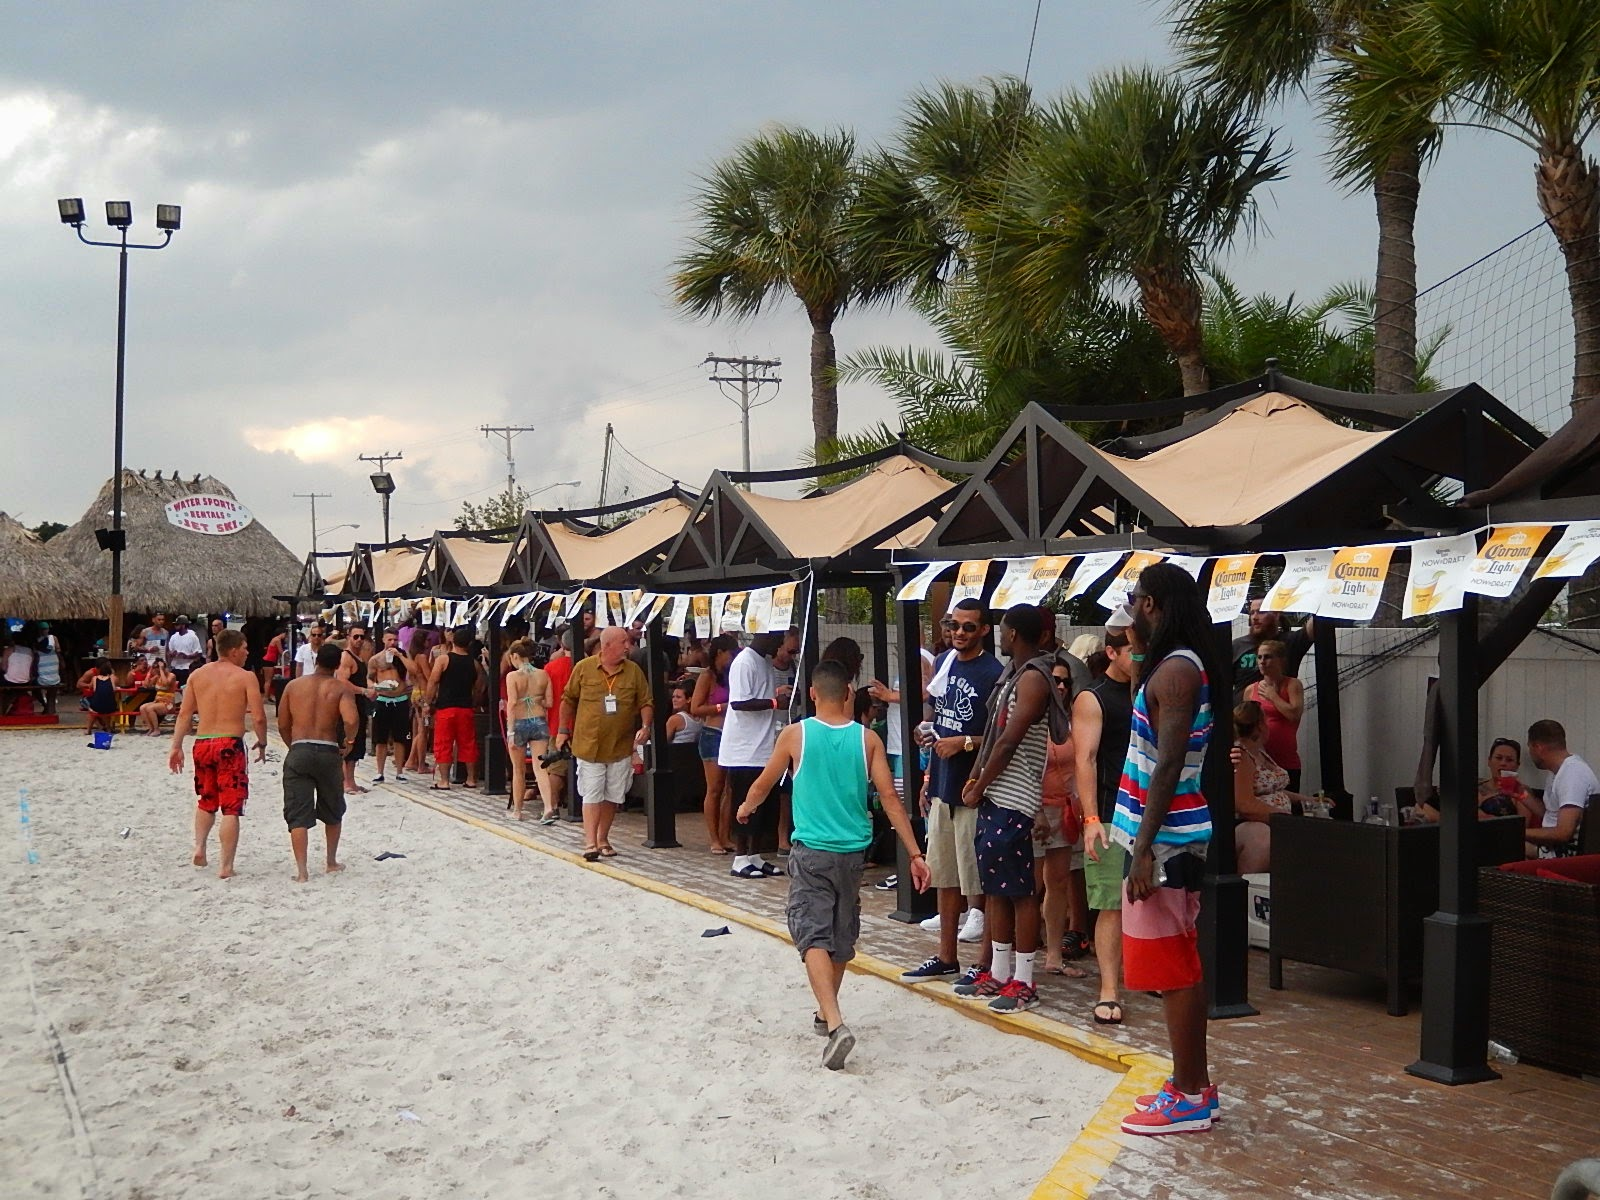 Made Up Of A Sandy Beach Area Surrounded By Tiki Huts The Dj Stage Was At Forefront